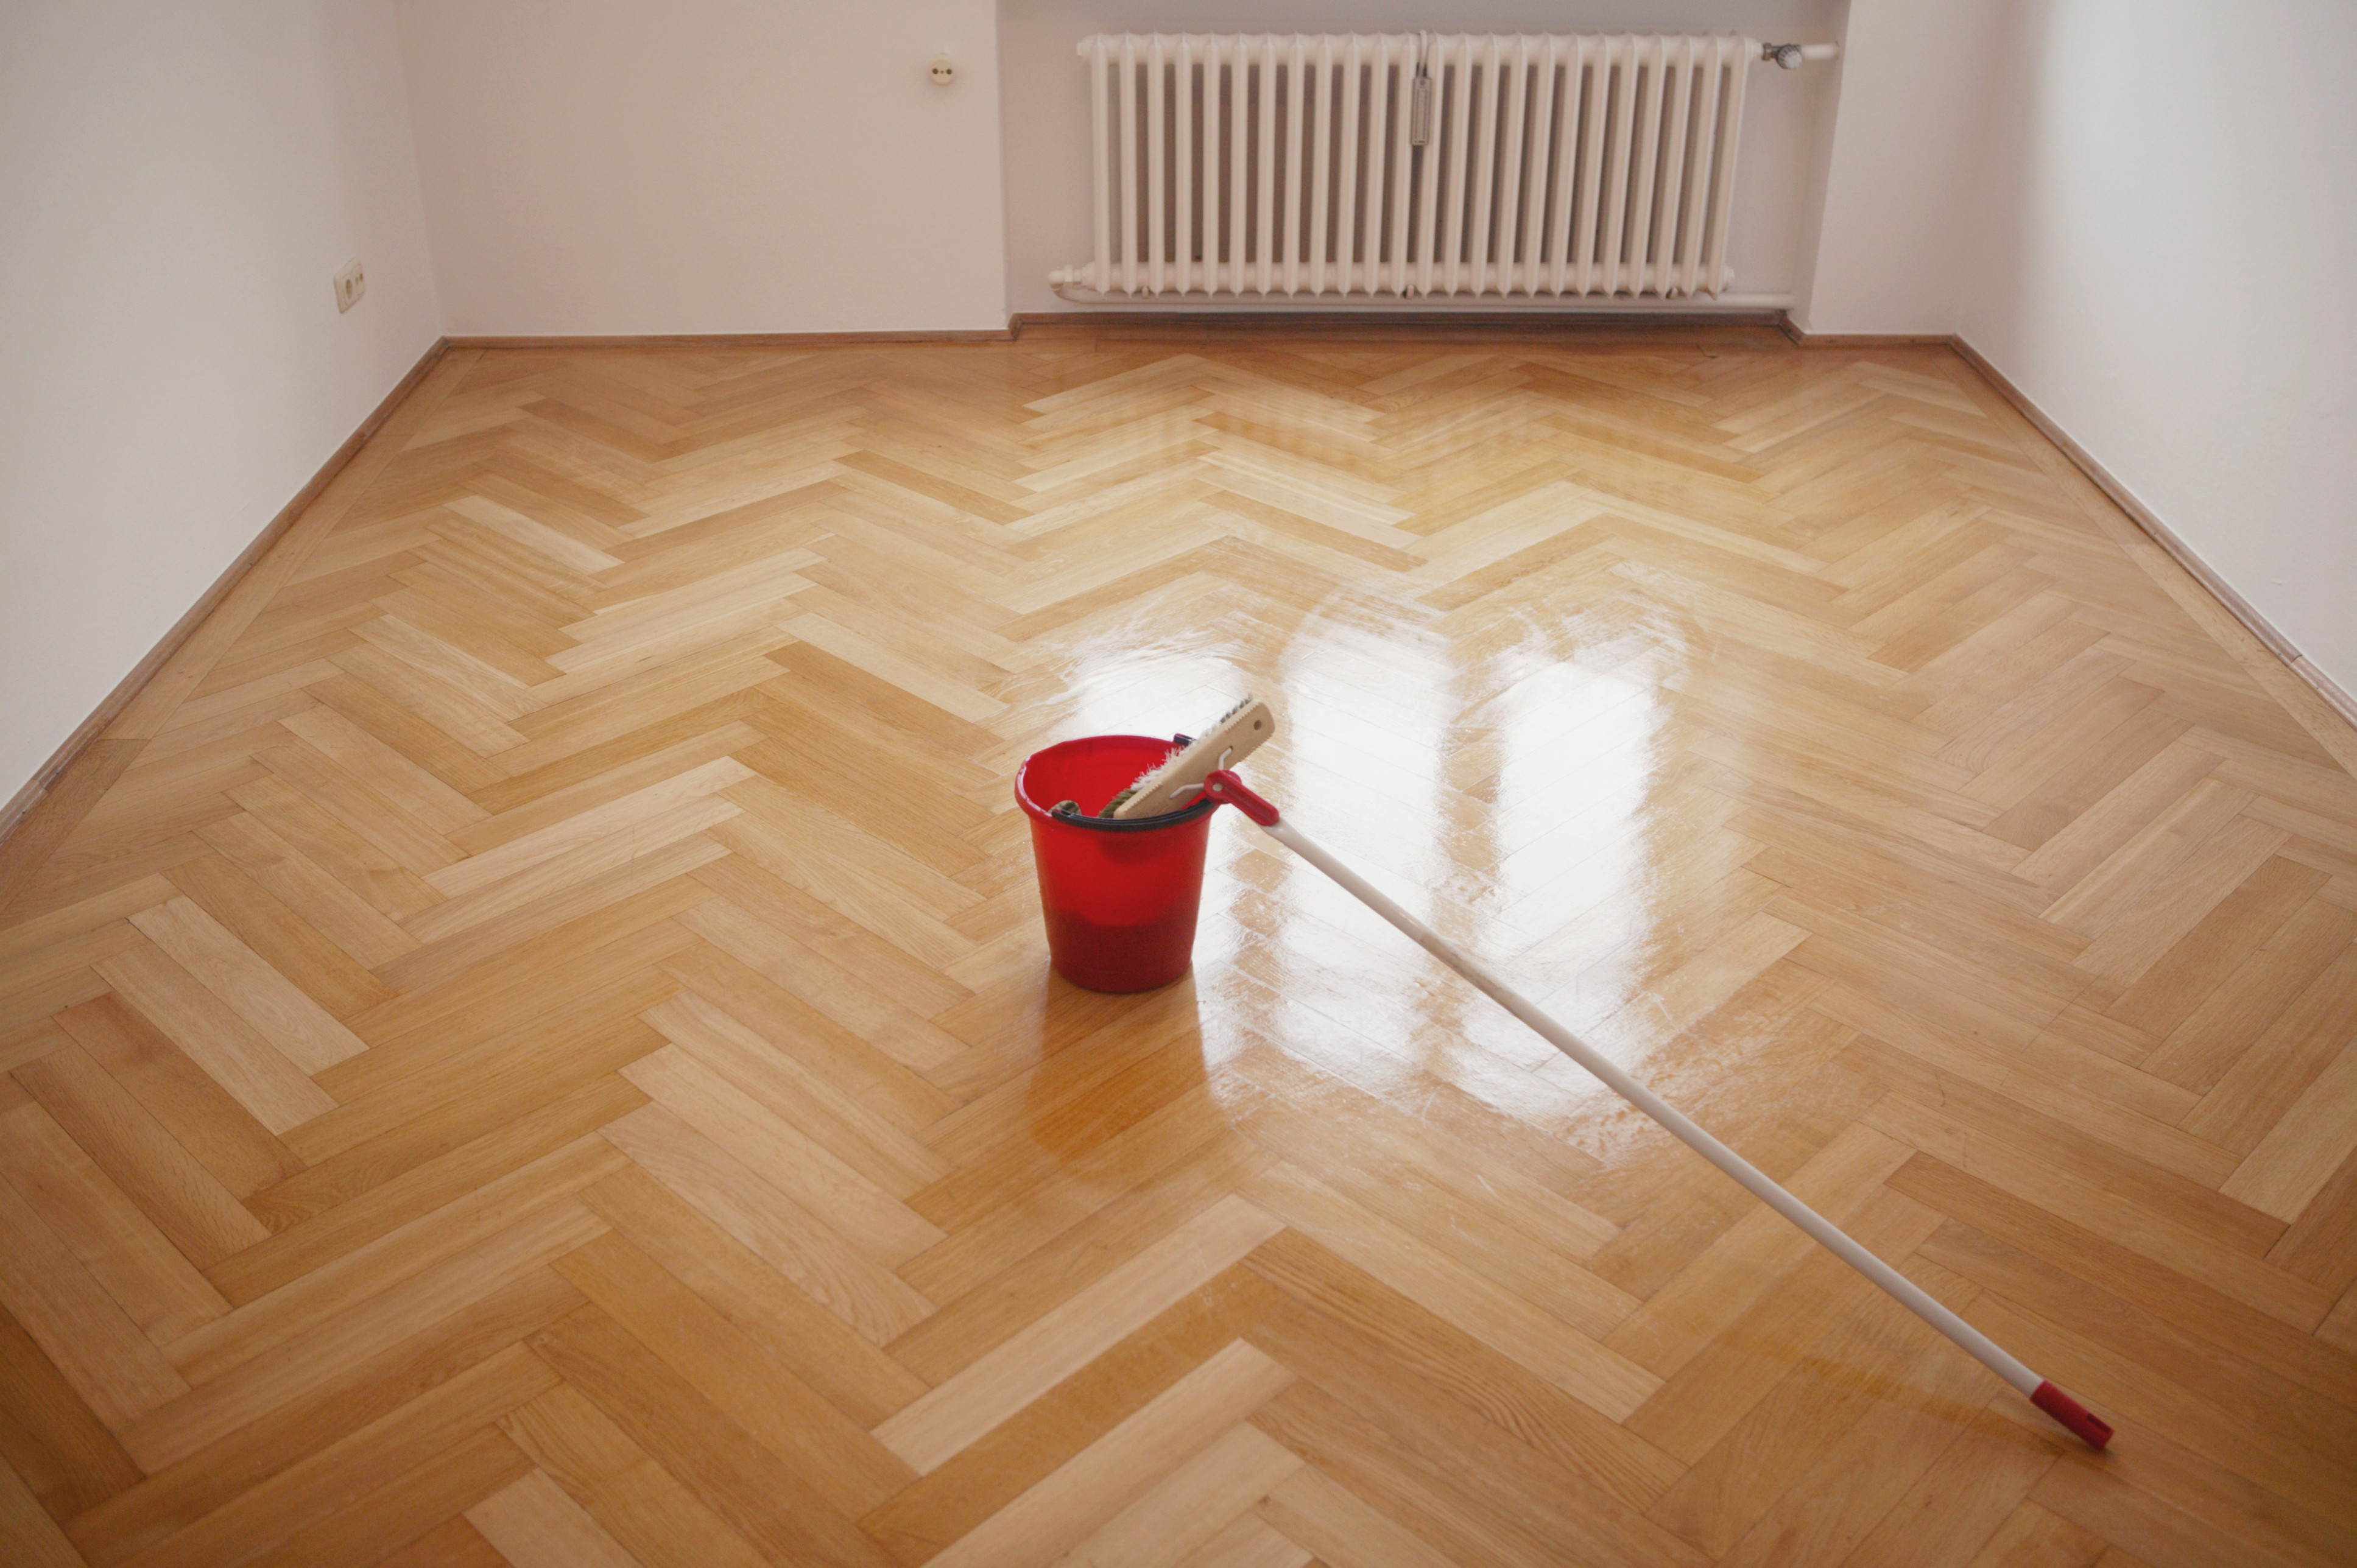 diy chair mat for hardwood floor red tub homebase 9 things you re doing to ruin your floors without even mopping wrong